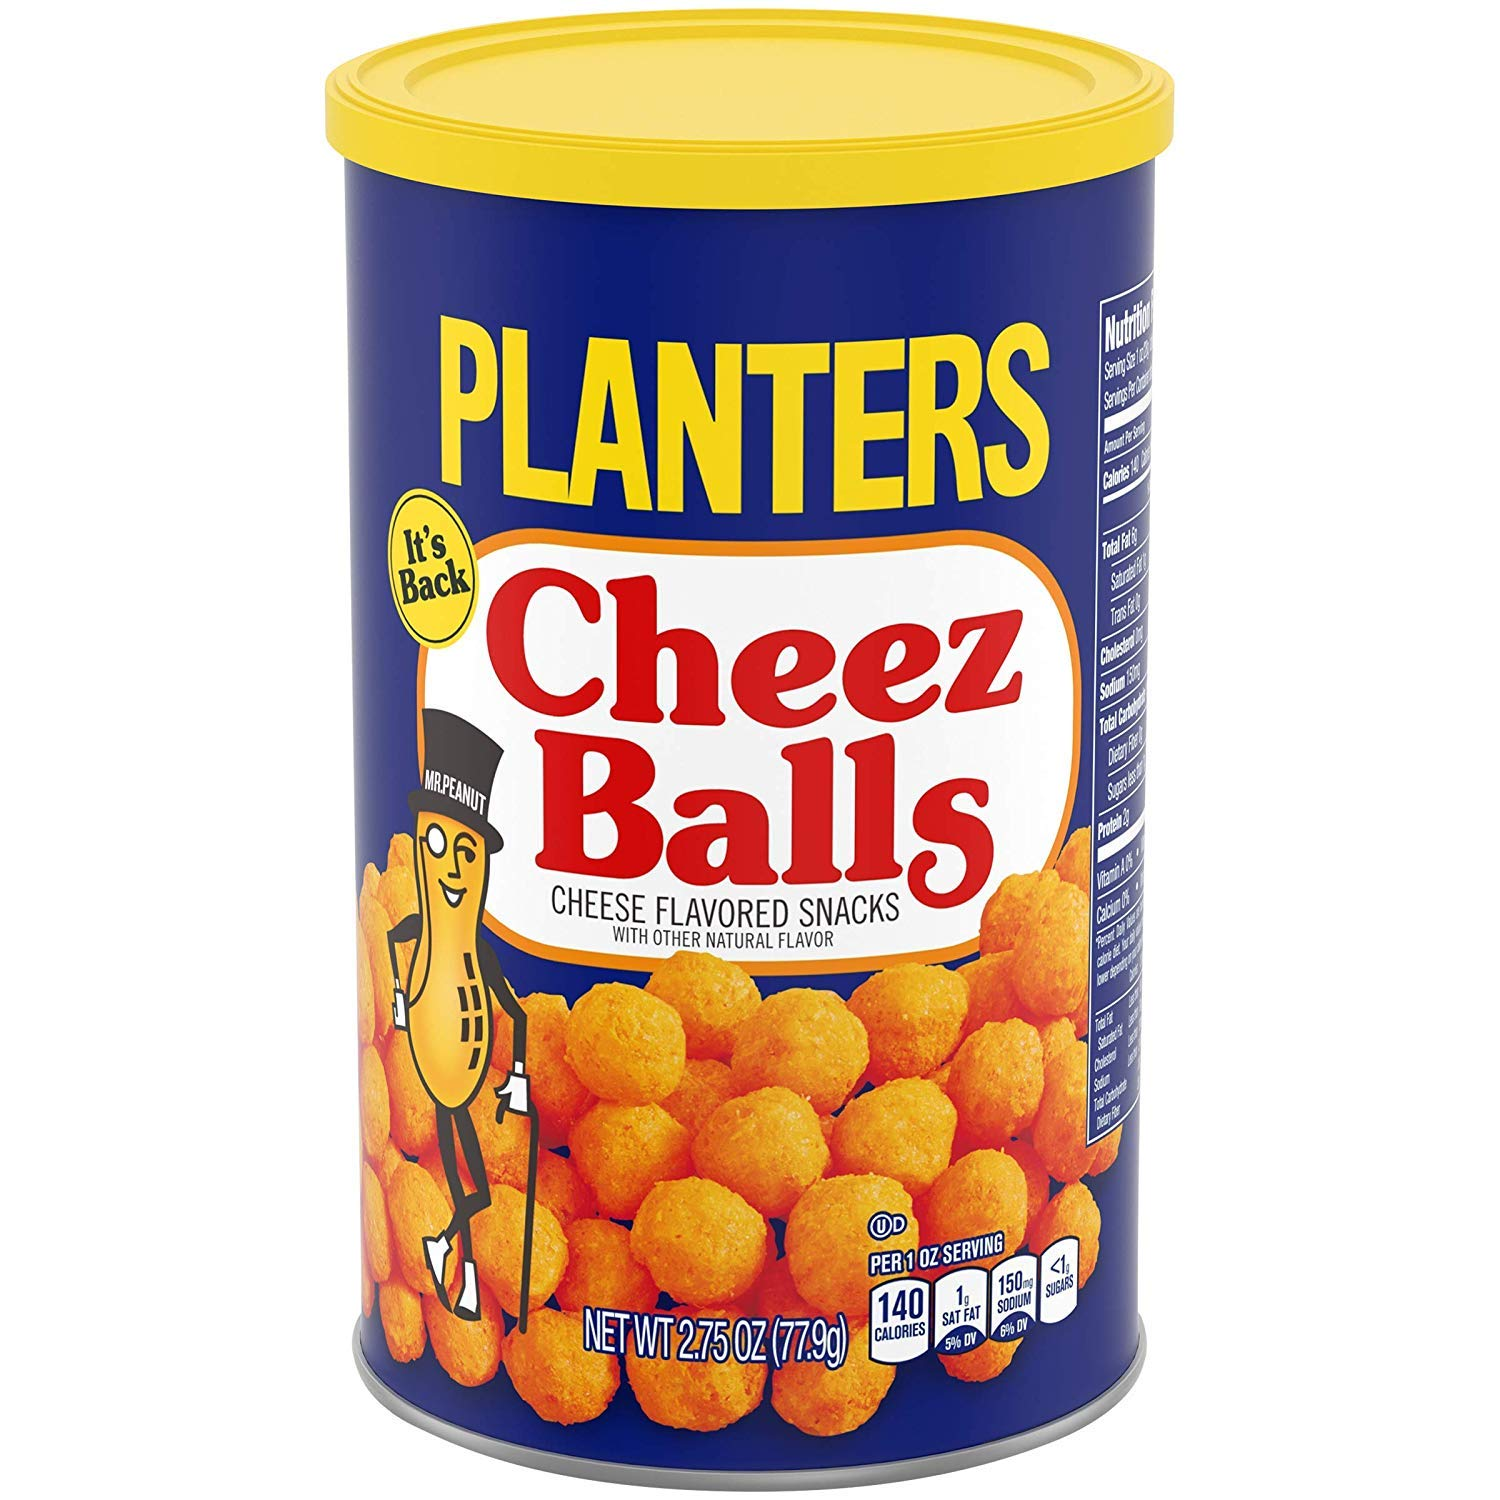 Planters Cheez Balls, 2.75 Oz Canister (Pack Of 6), 2.75 Oz by PLANTERS